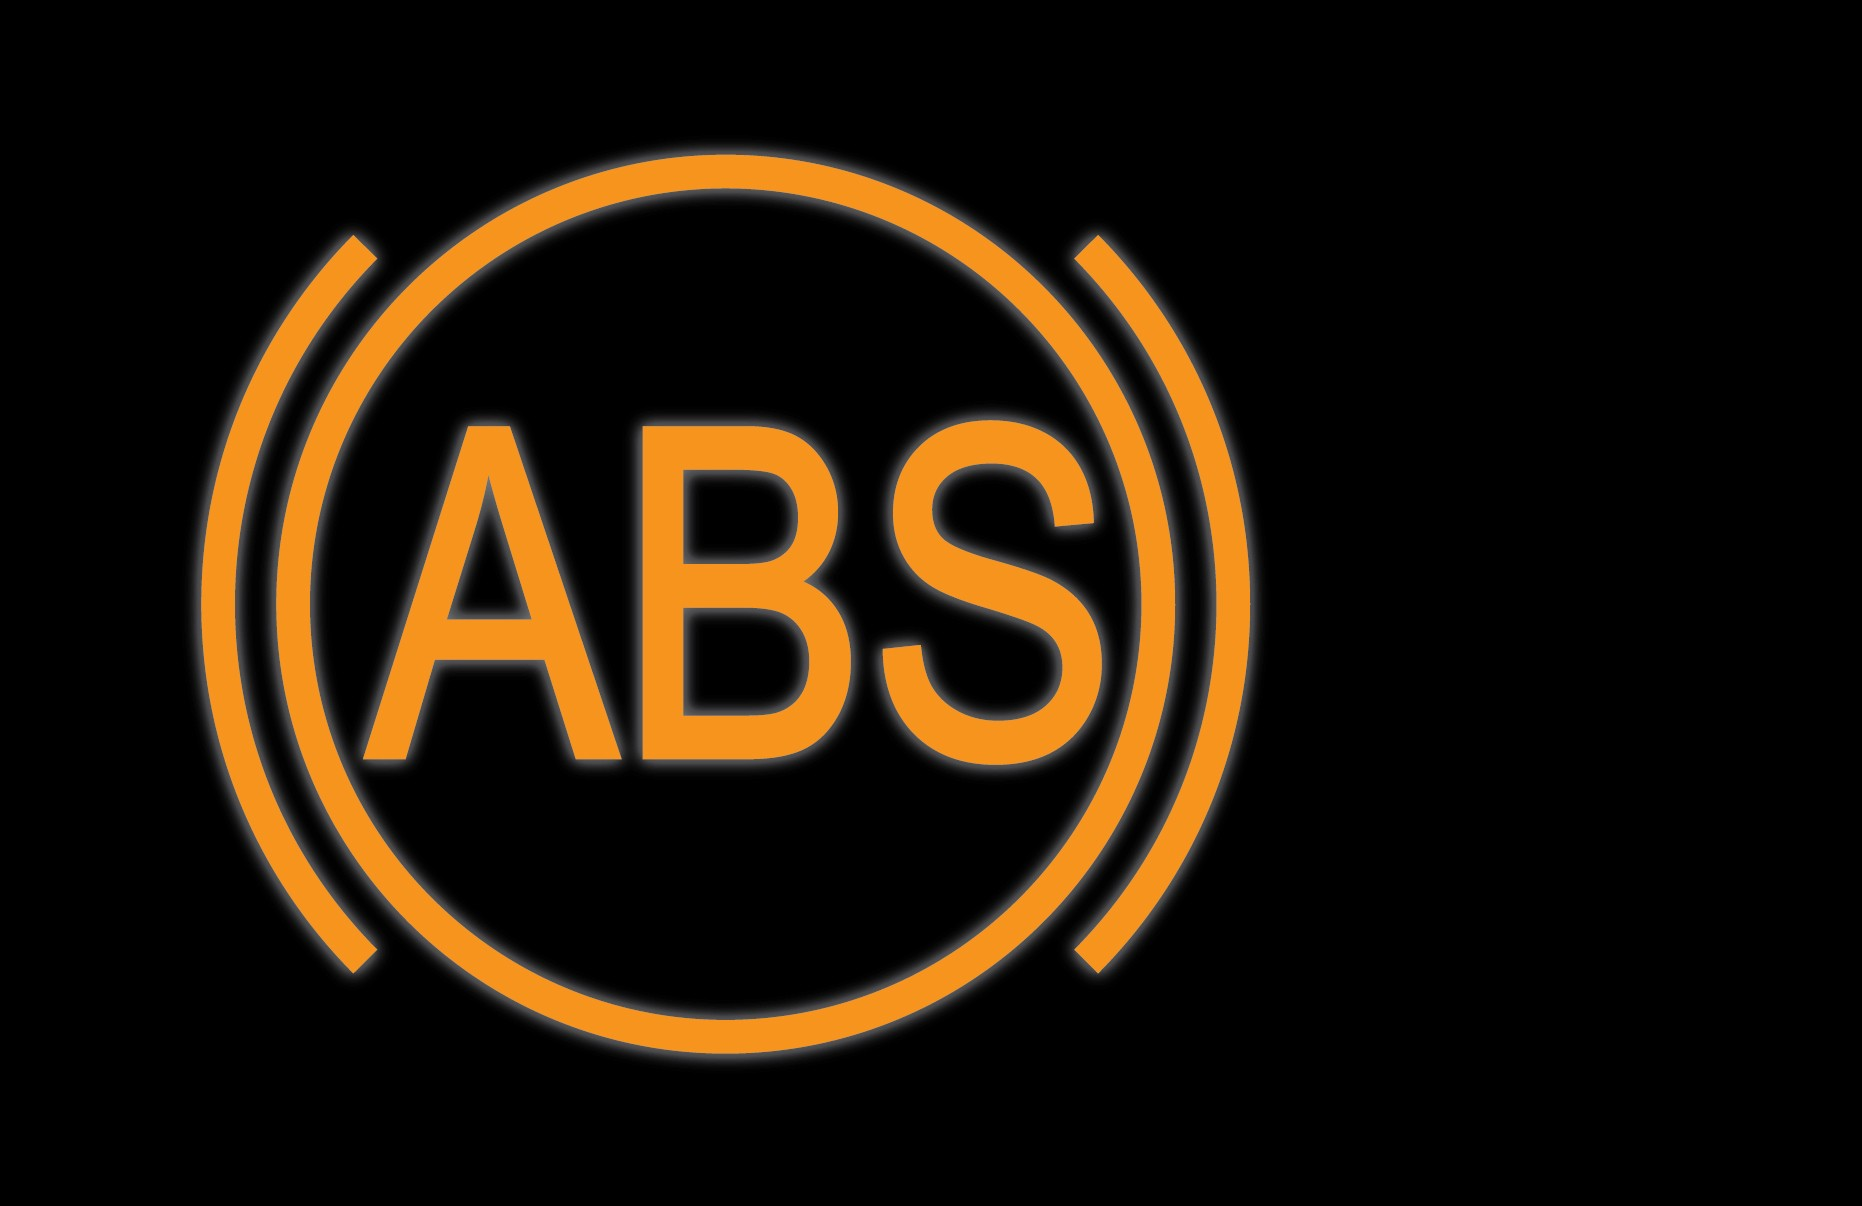 ABS (Anti-lock Brake System)